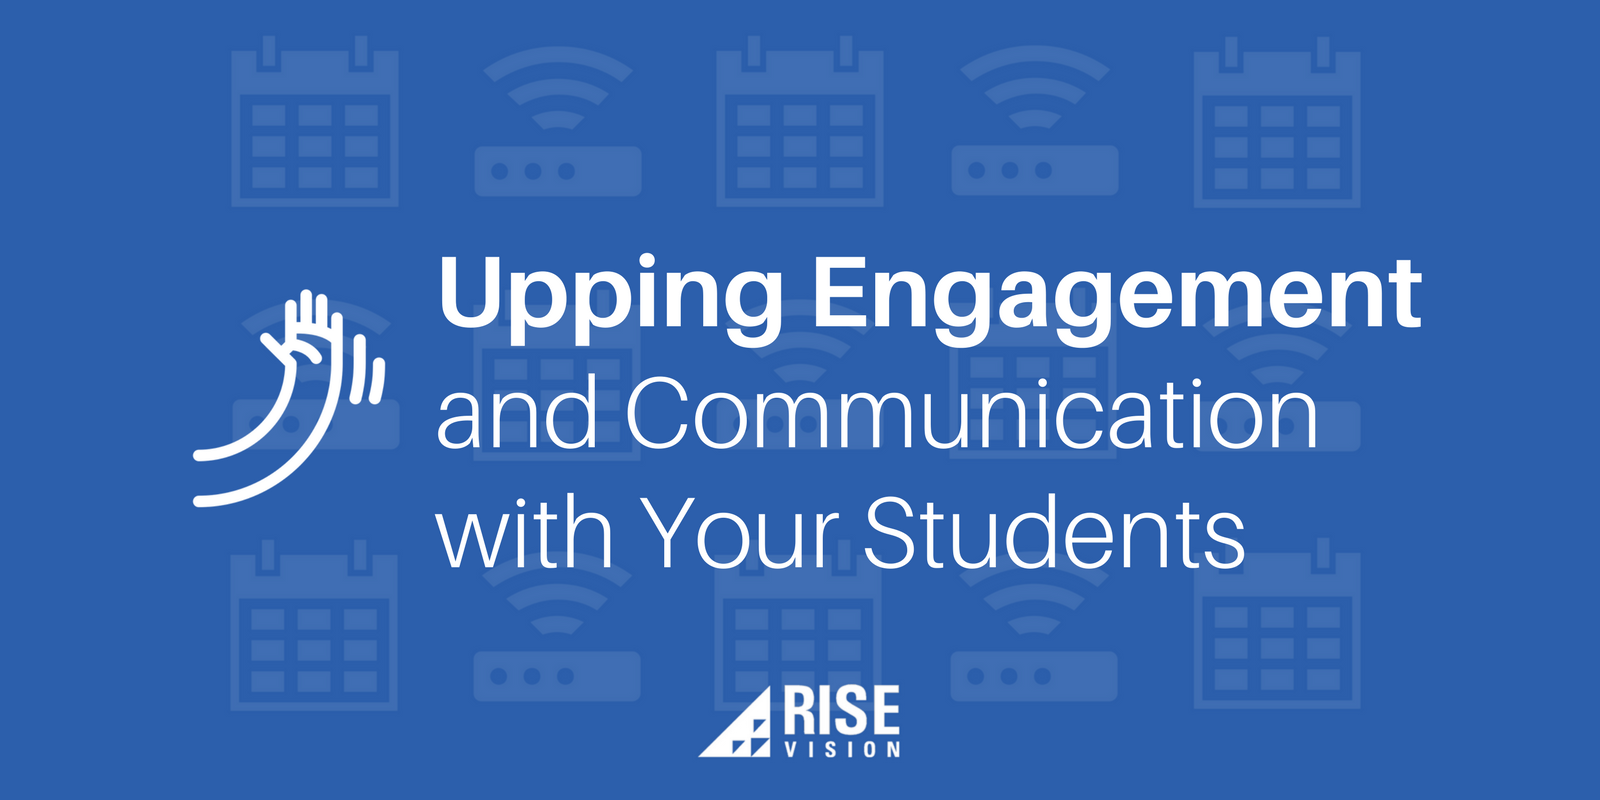 Rise Vision Digital Signage Campus Students College University Strategy Engagement.png